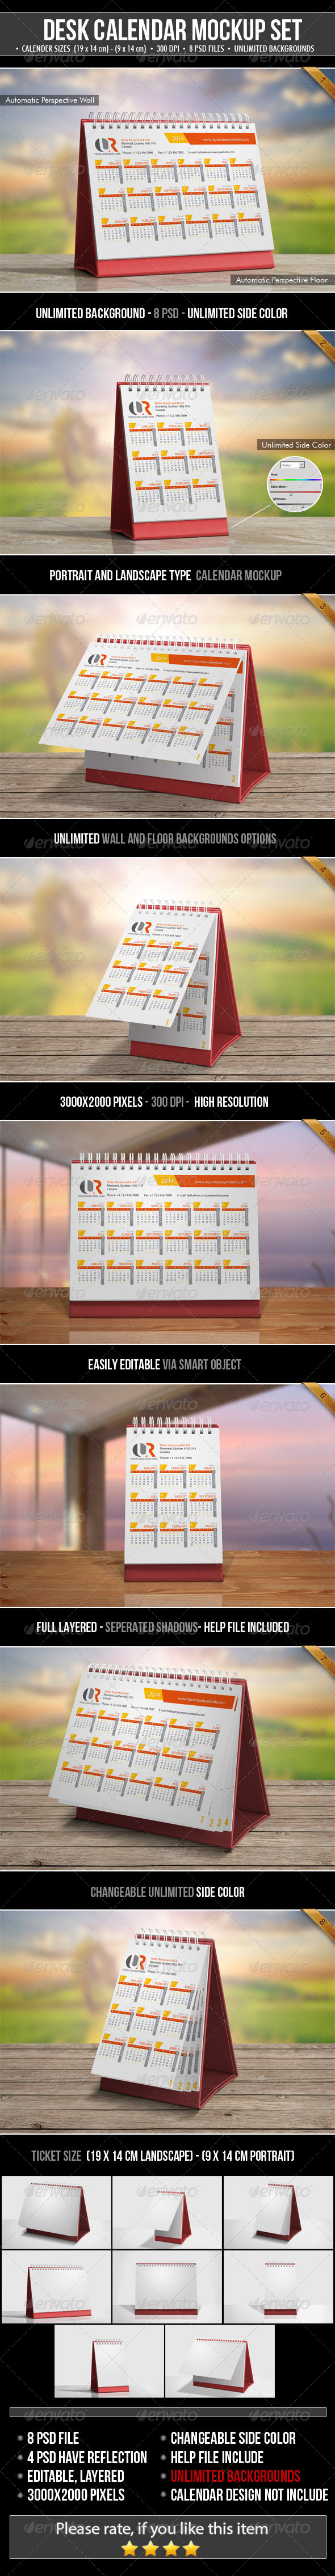 Desk Calendar Mockup Set - Miscellaneous Print